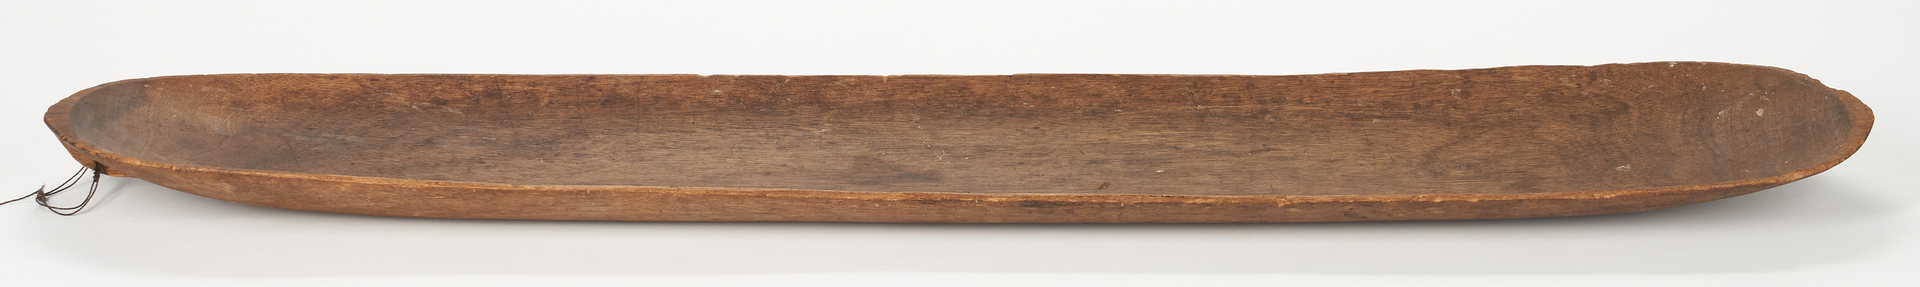 "Lot 1053: 19th C. Hand Hewn Trencher, 60""L"